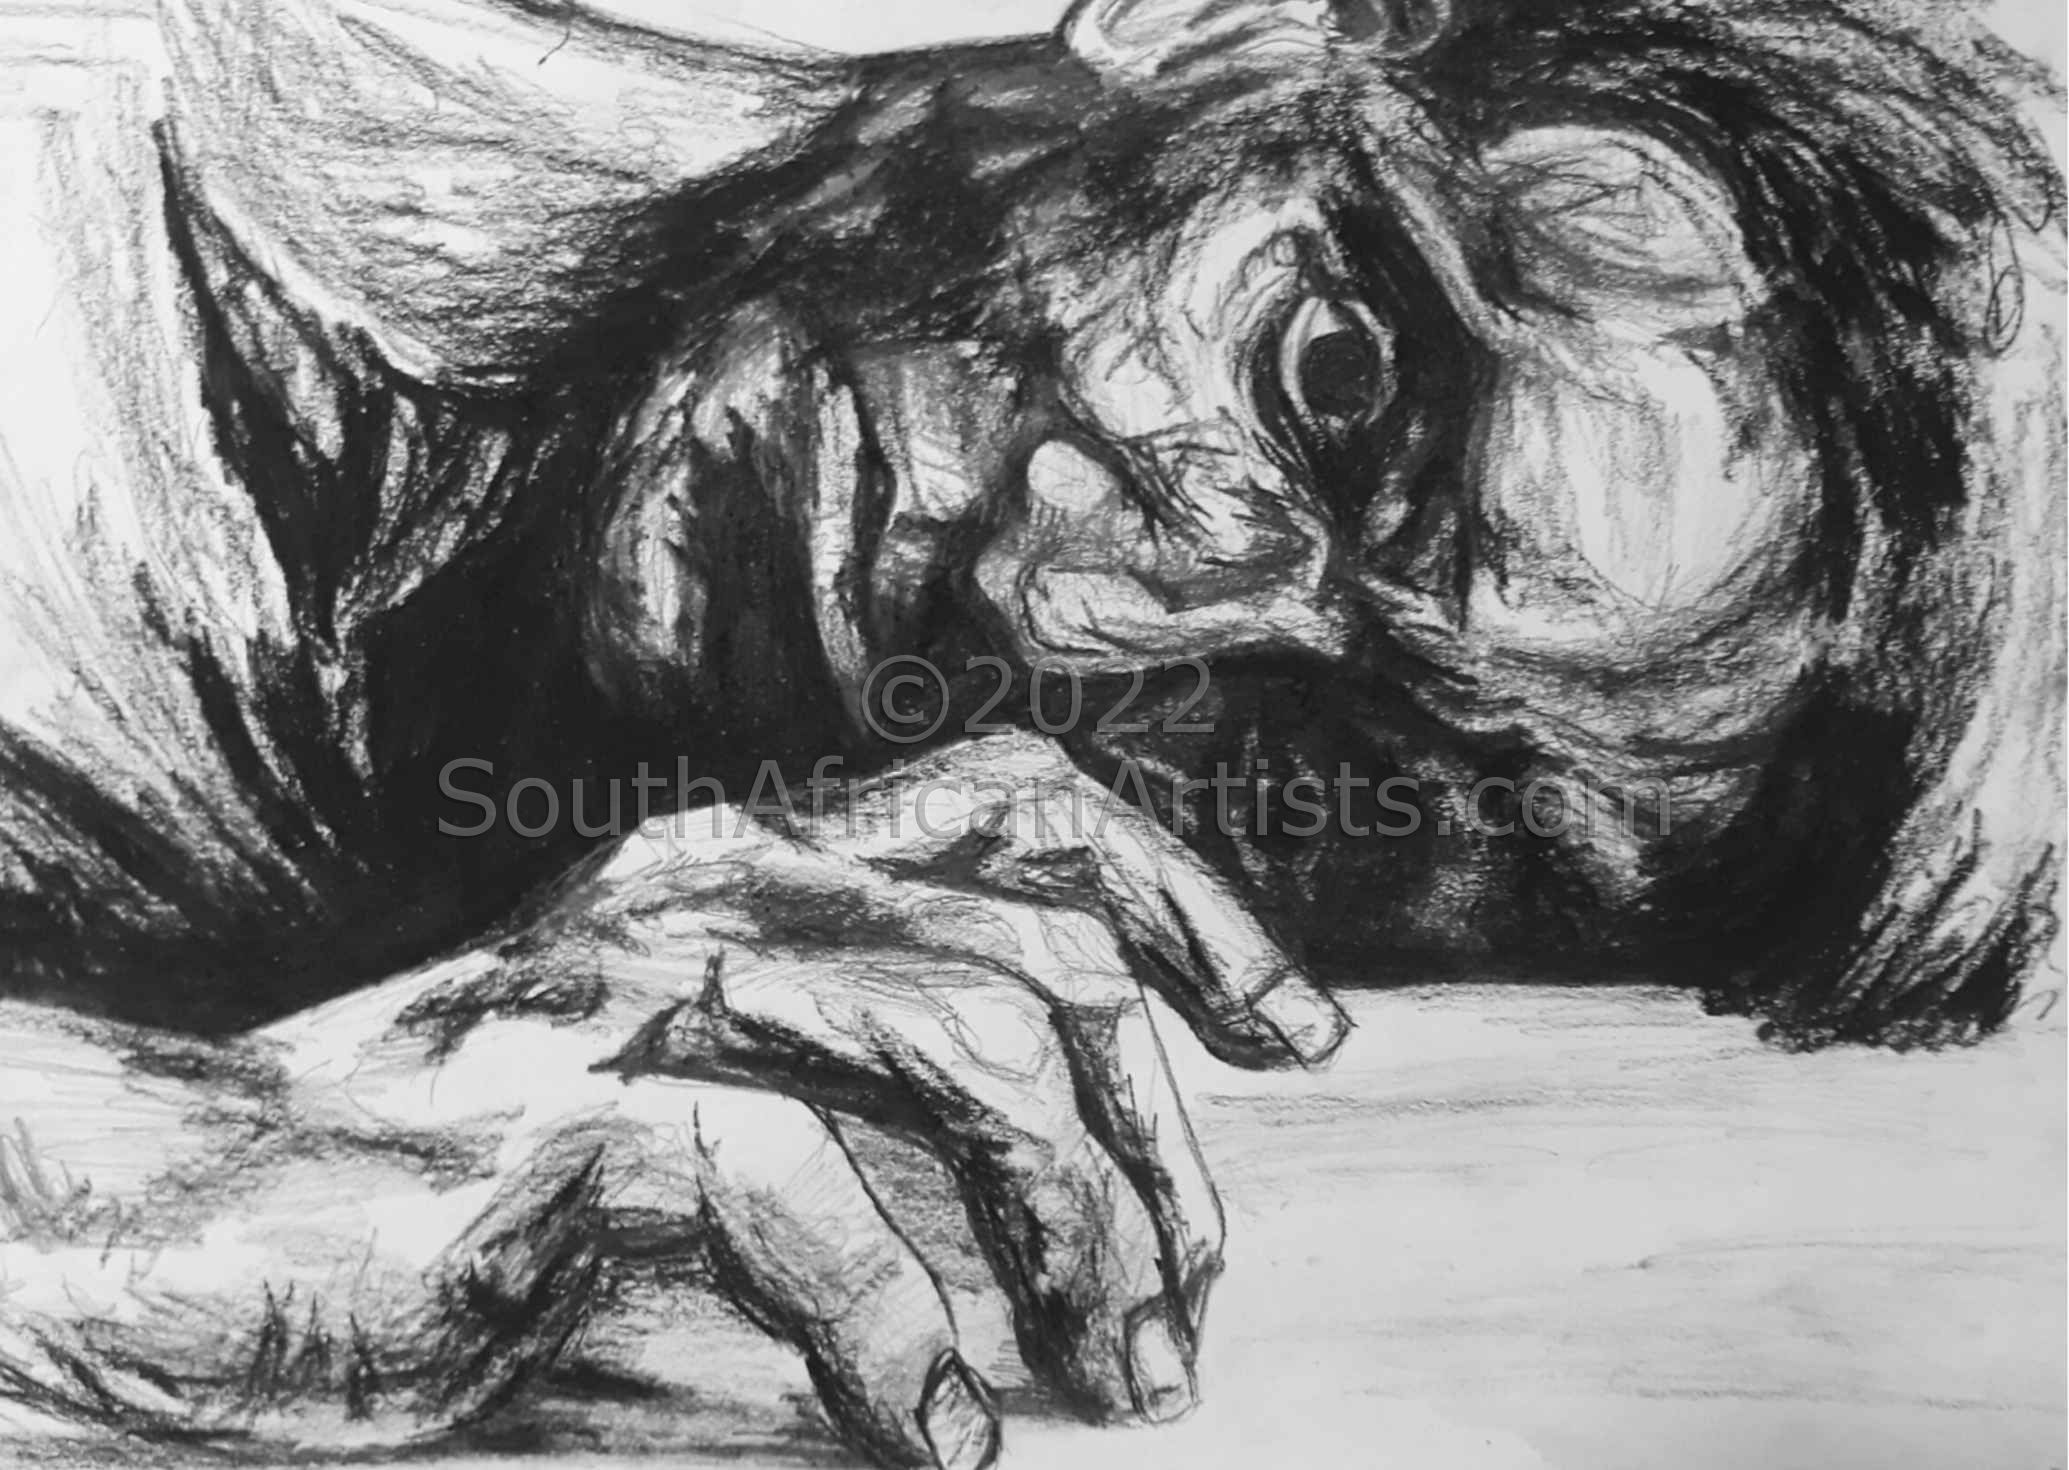 Charcoal Exspresion 3 (Lost in Thoughts)